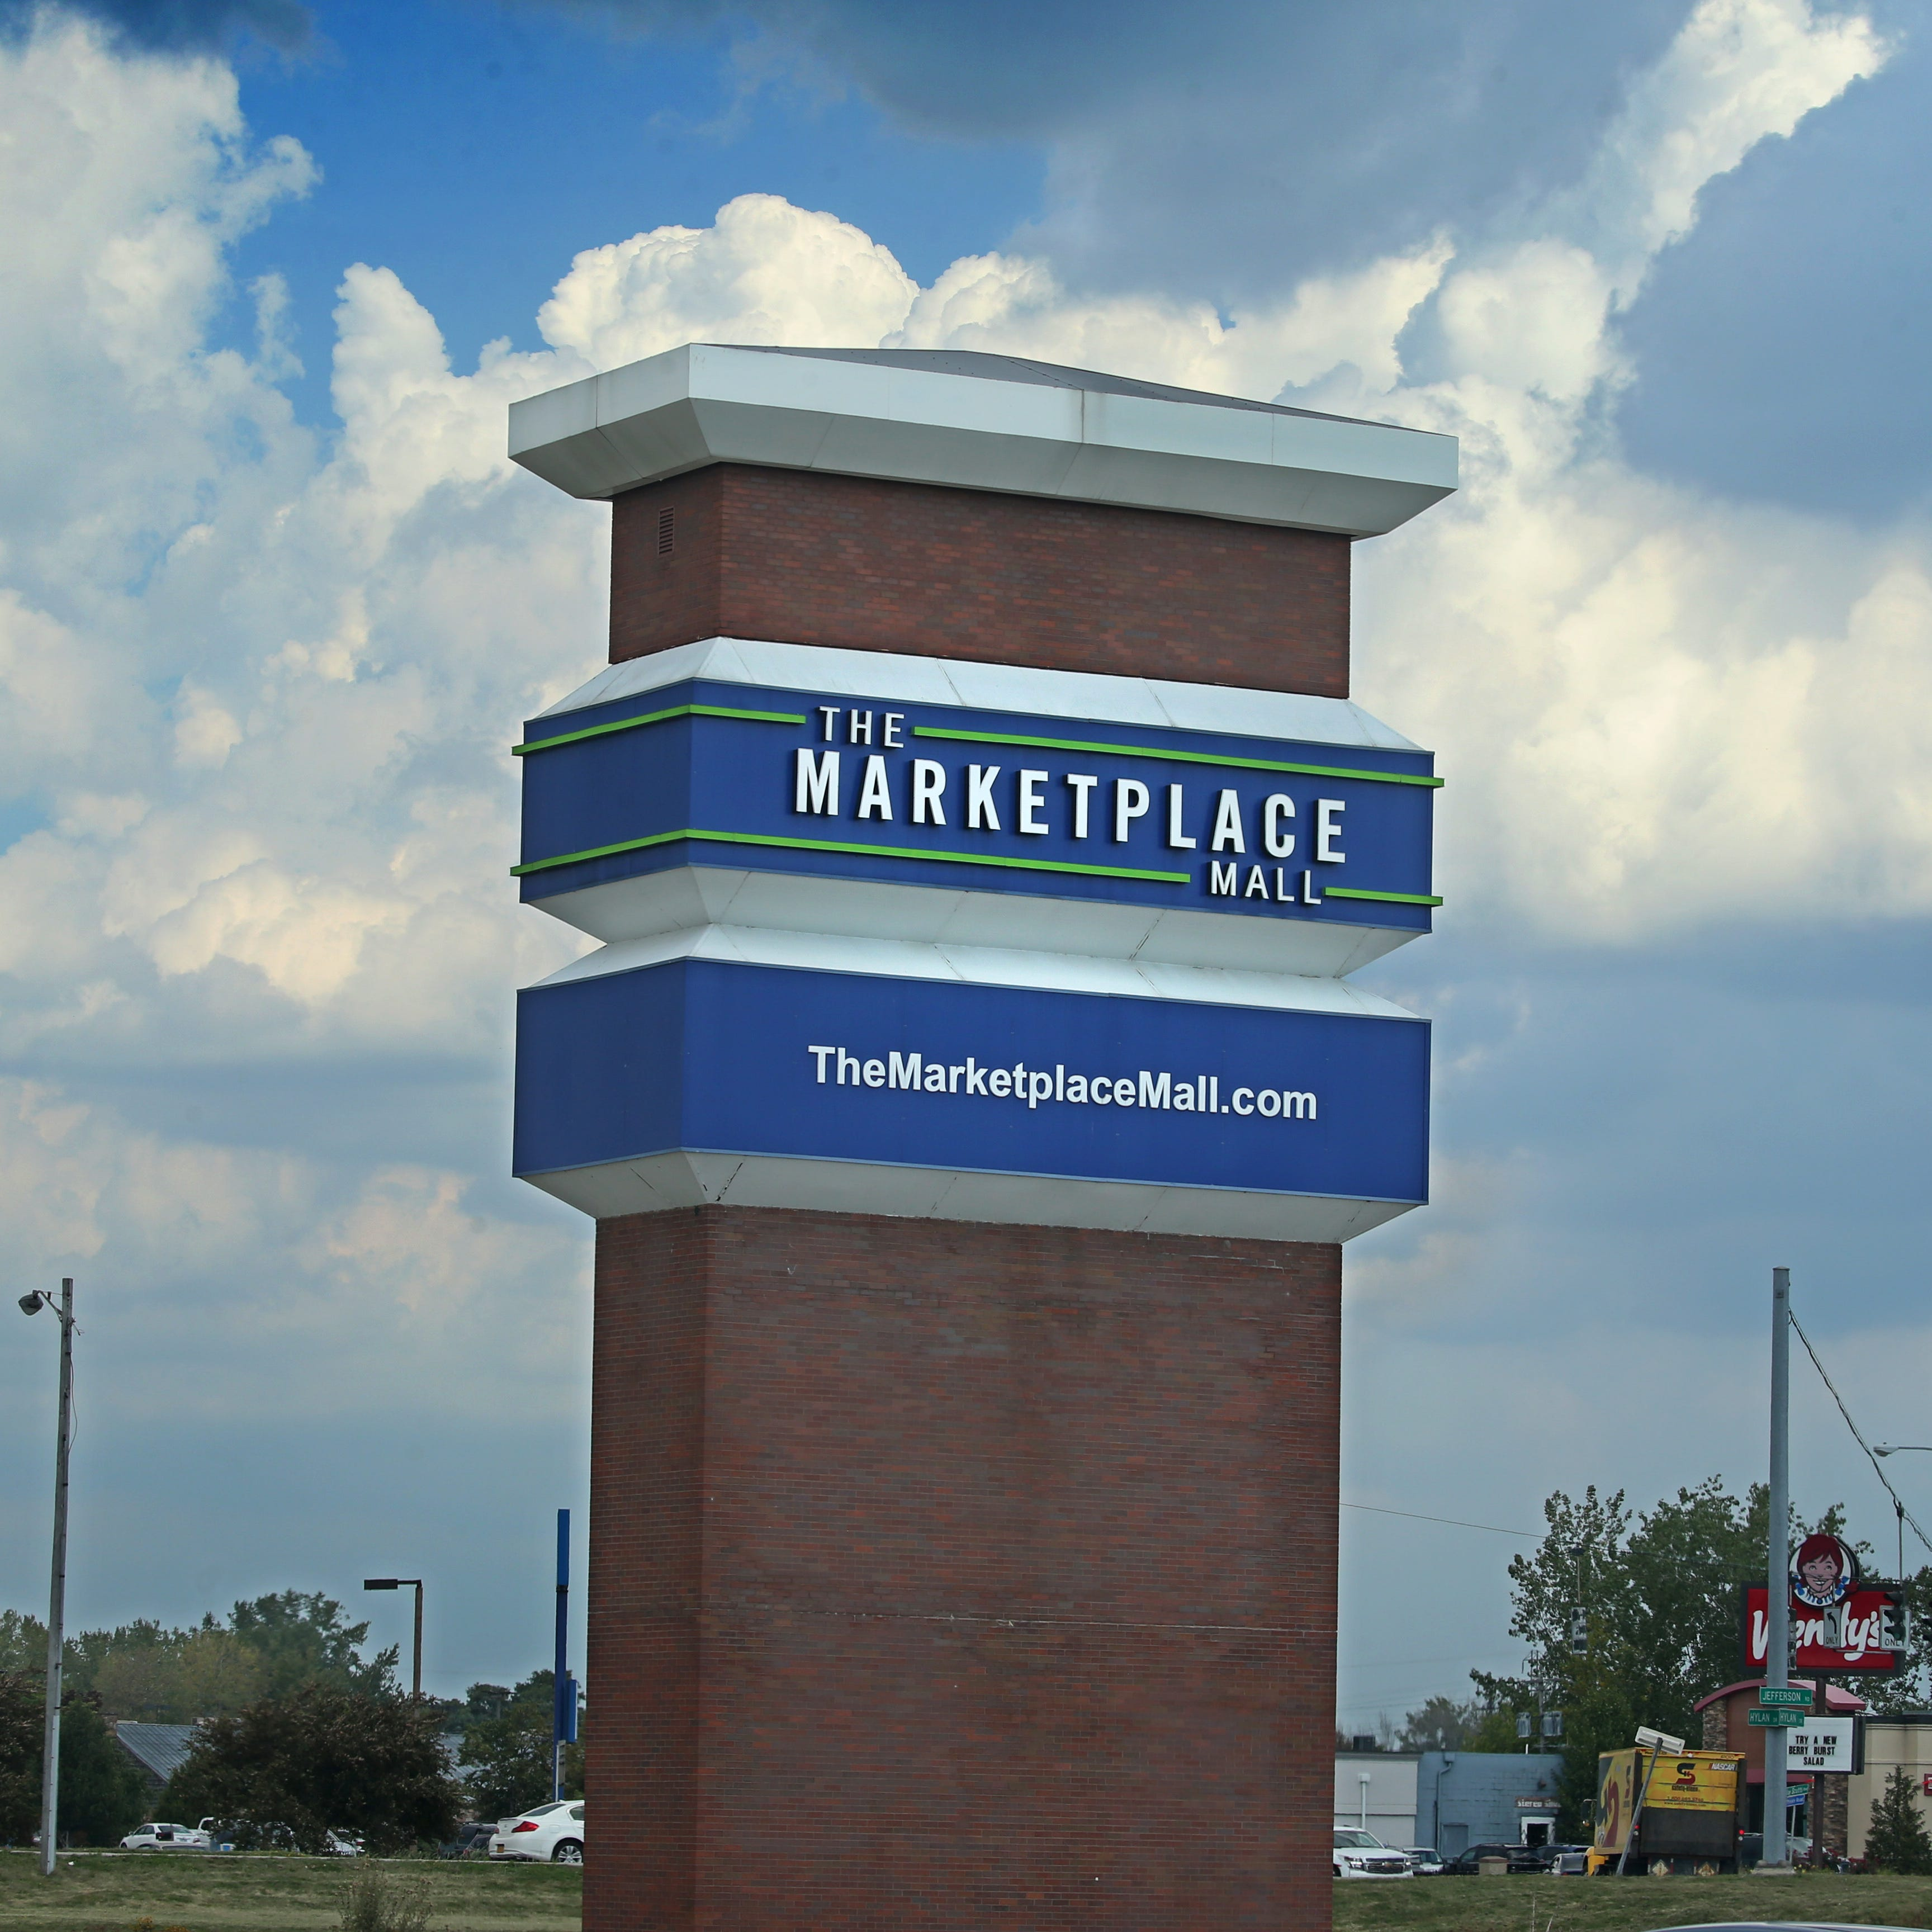 Changes ahead for The Marketplace Mall? Owners enlist county to help pave way for new tenant